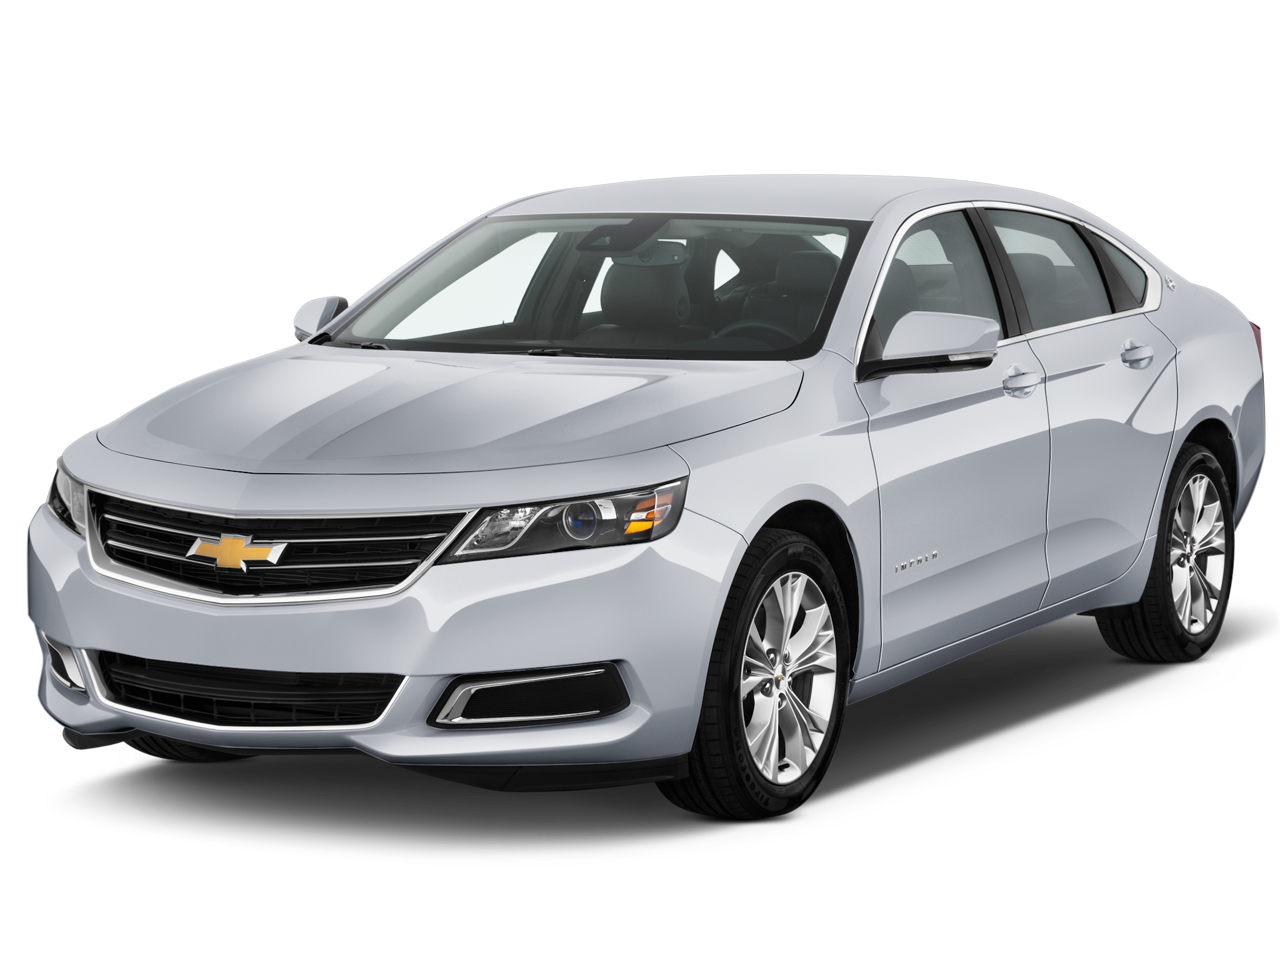 2017 chevrolet impala premier 2lz silver ice metallic in lawrence 2017 2018 best cars reviews. Black Bedroom Furniture Sets. Home Design Ideas